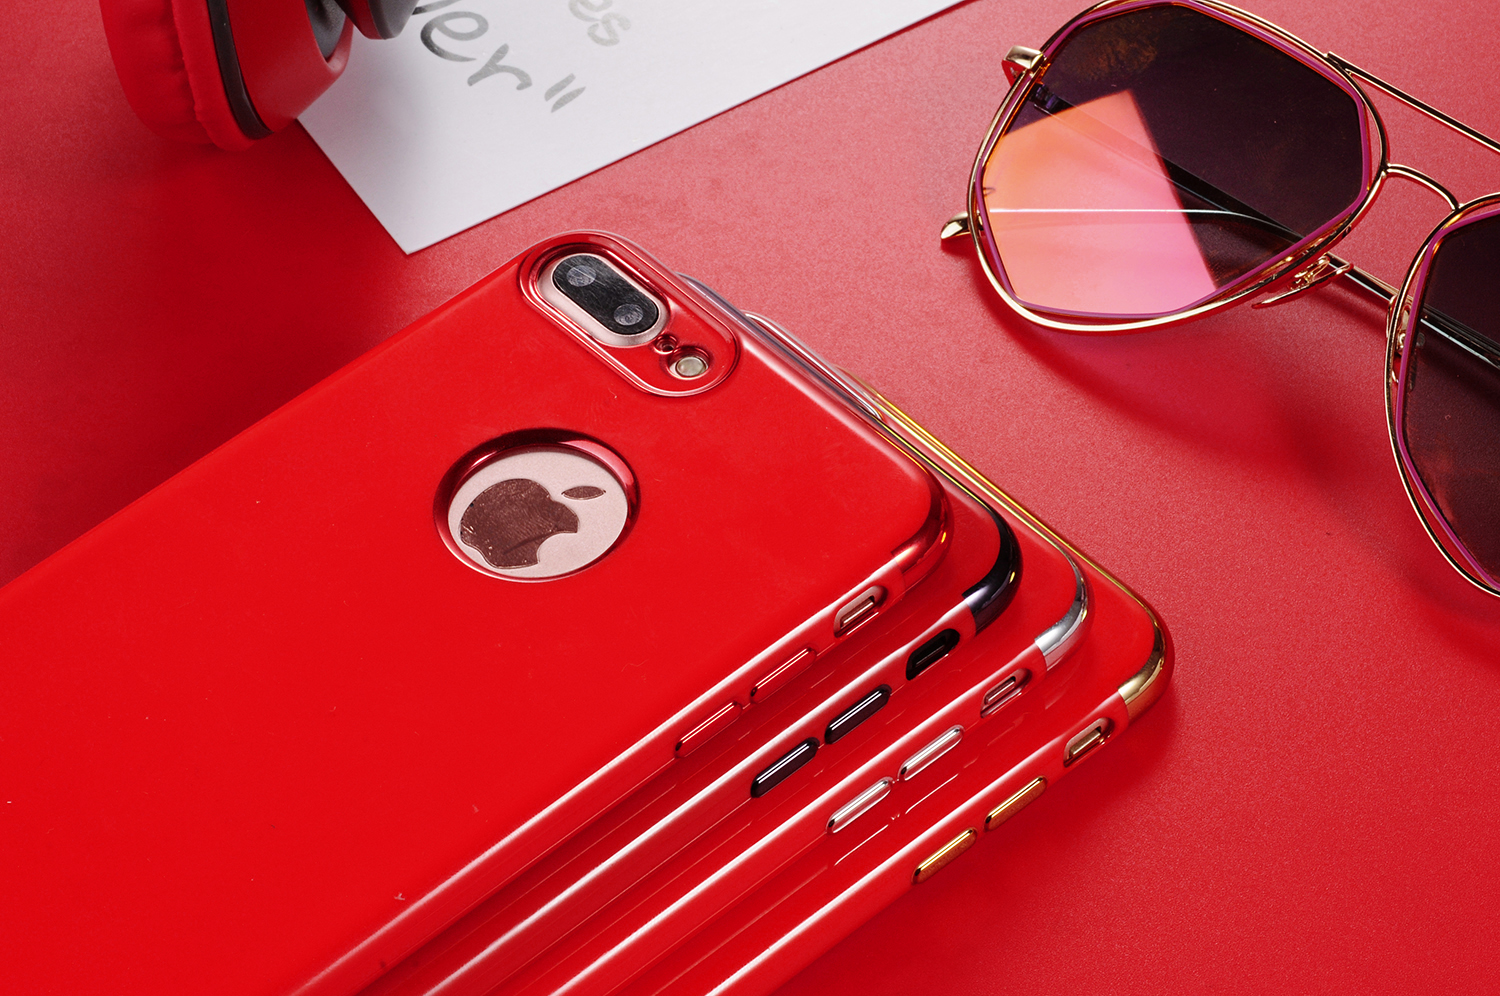 Hot China Red Fitted Case For iPhone 7 iPhone7 Plus Back Cover Eletraplated Fashion Shell Soft Cases High Quality Luxury Brand(China (Mainland))